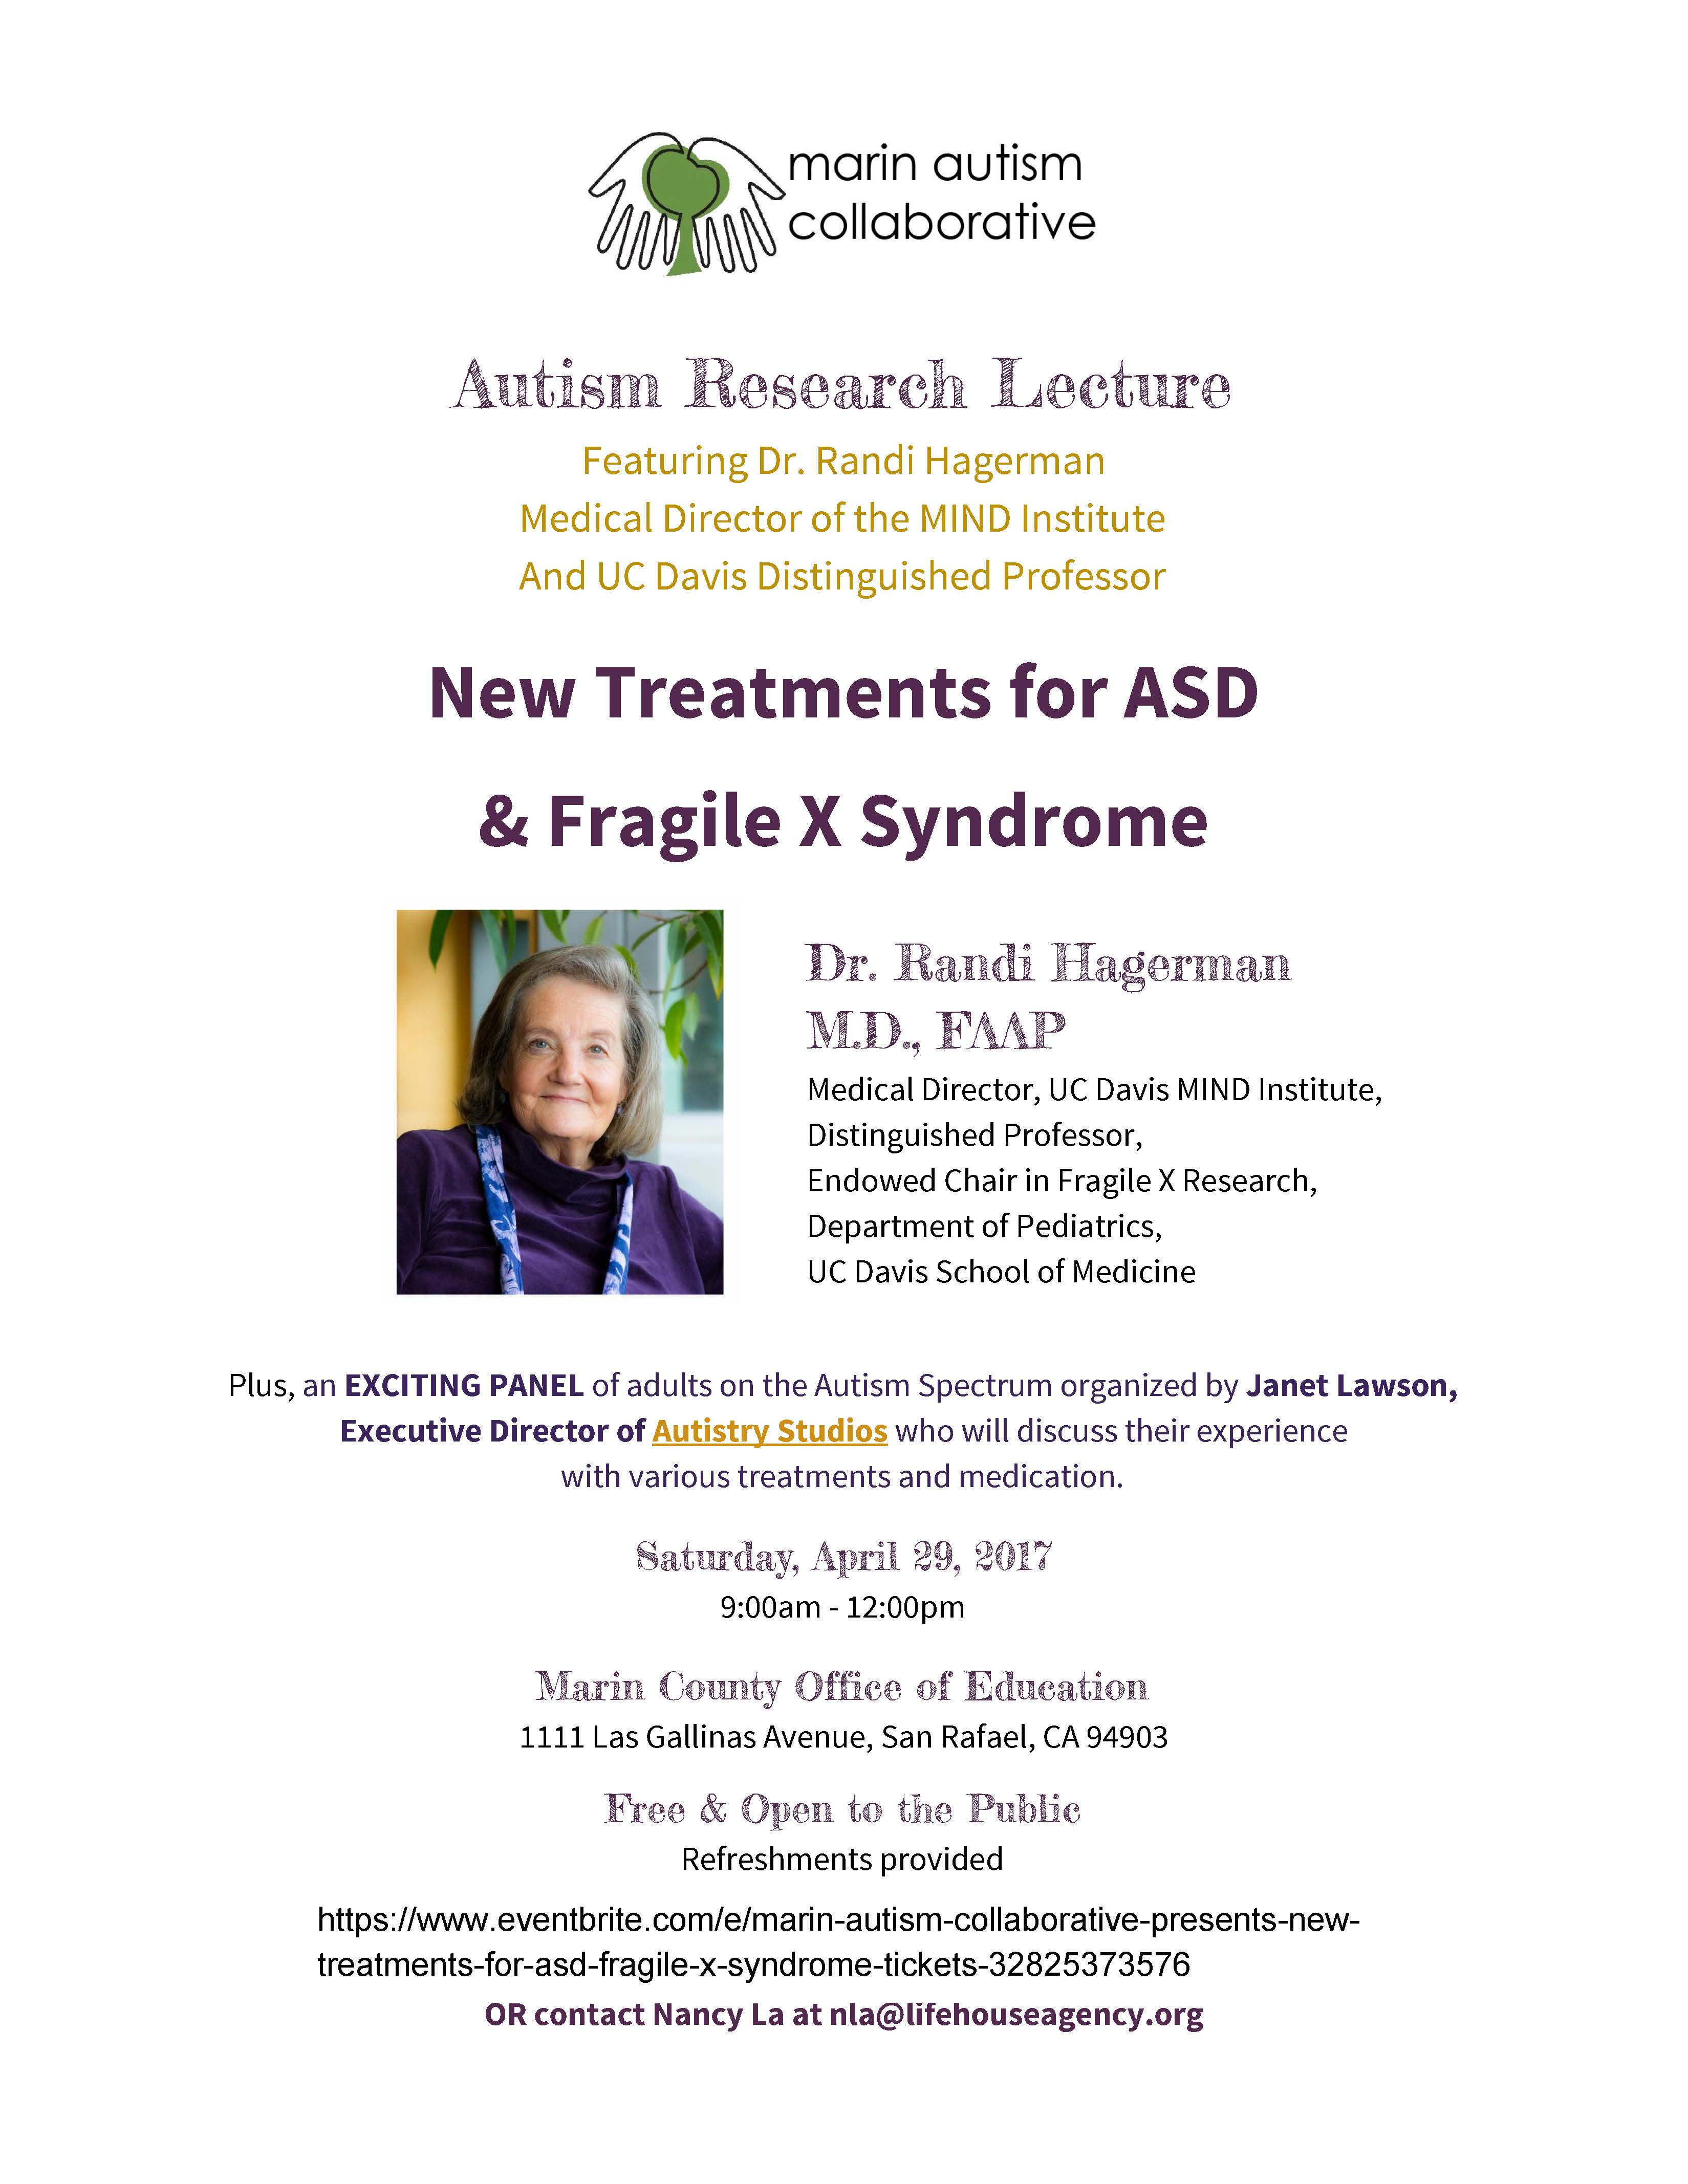 Autism Research Lecture flyer